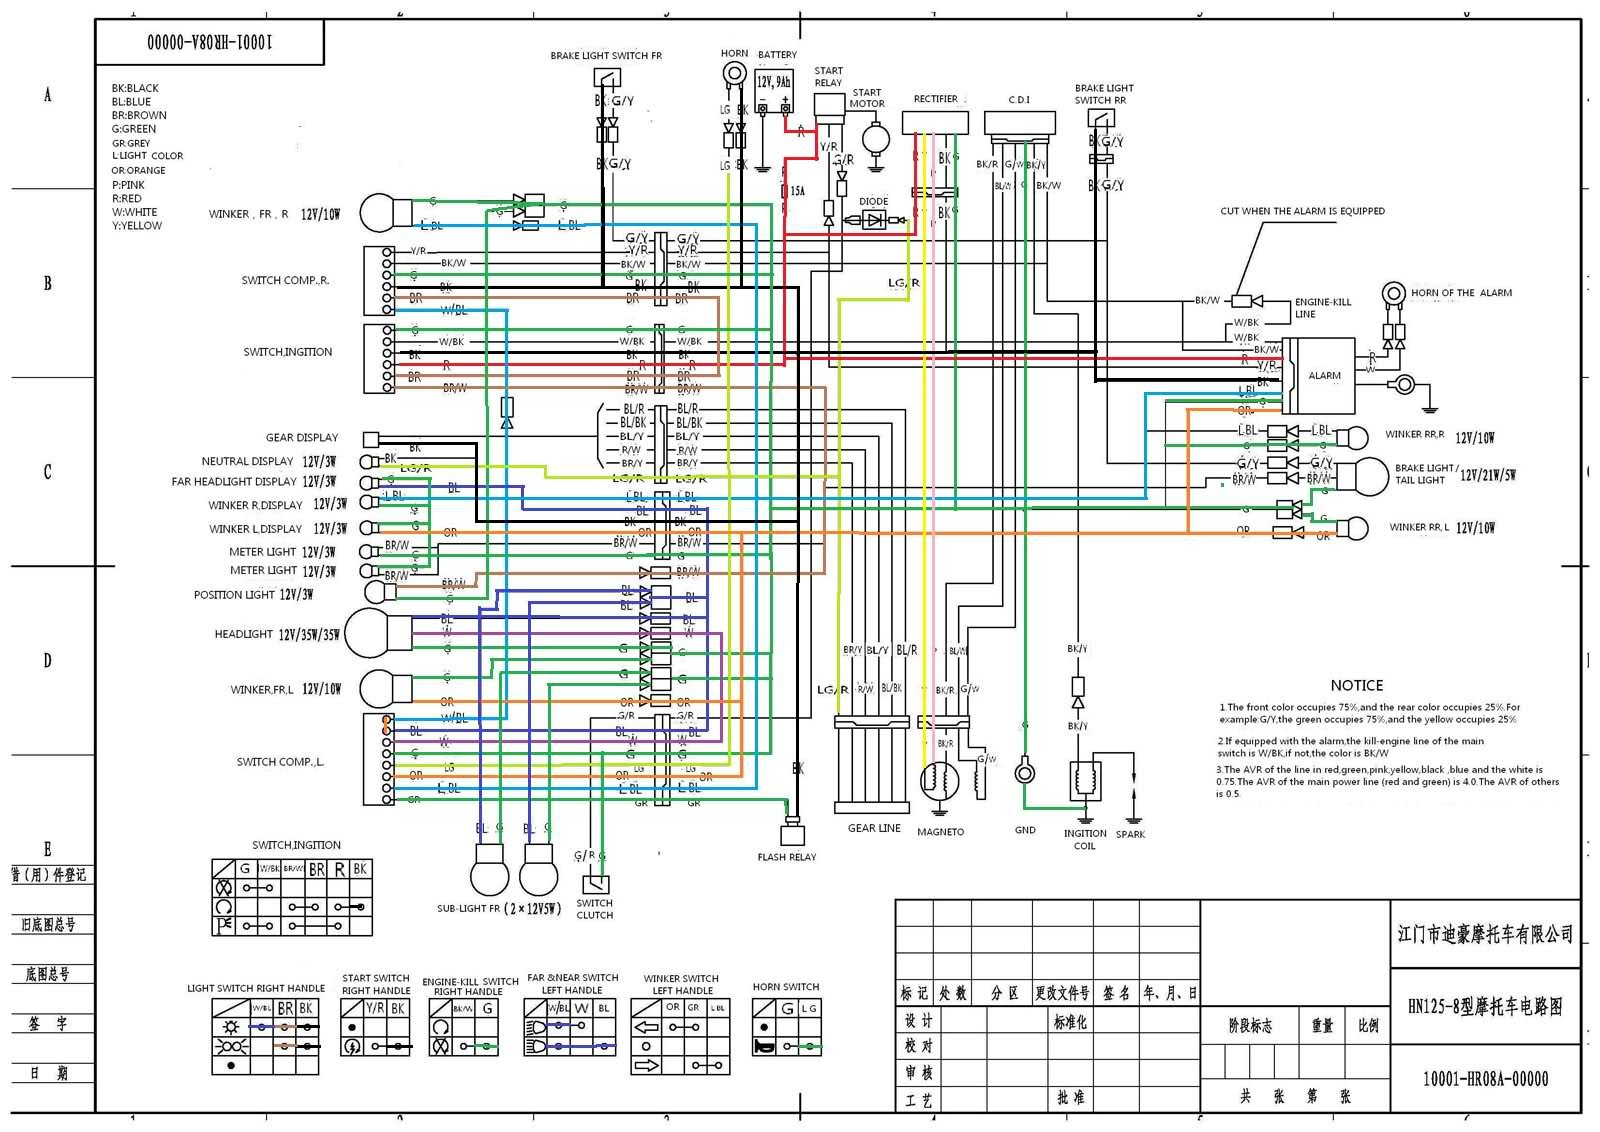 hight resolution of lifan 110cc engine wiring diagram application wiring diagram u2022 rh cleanairclub co chinese